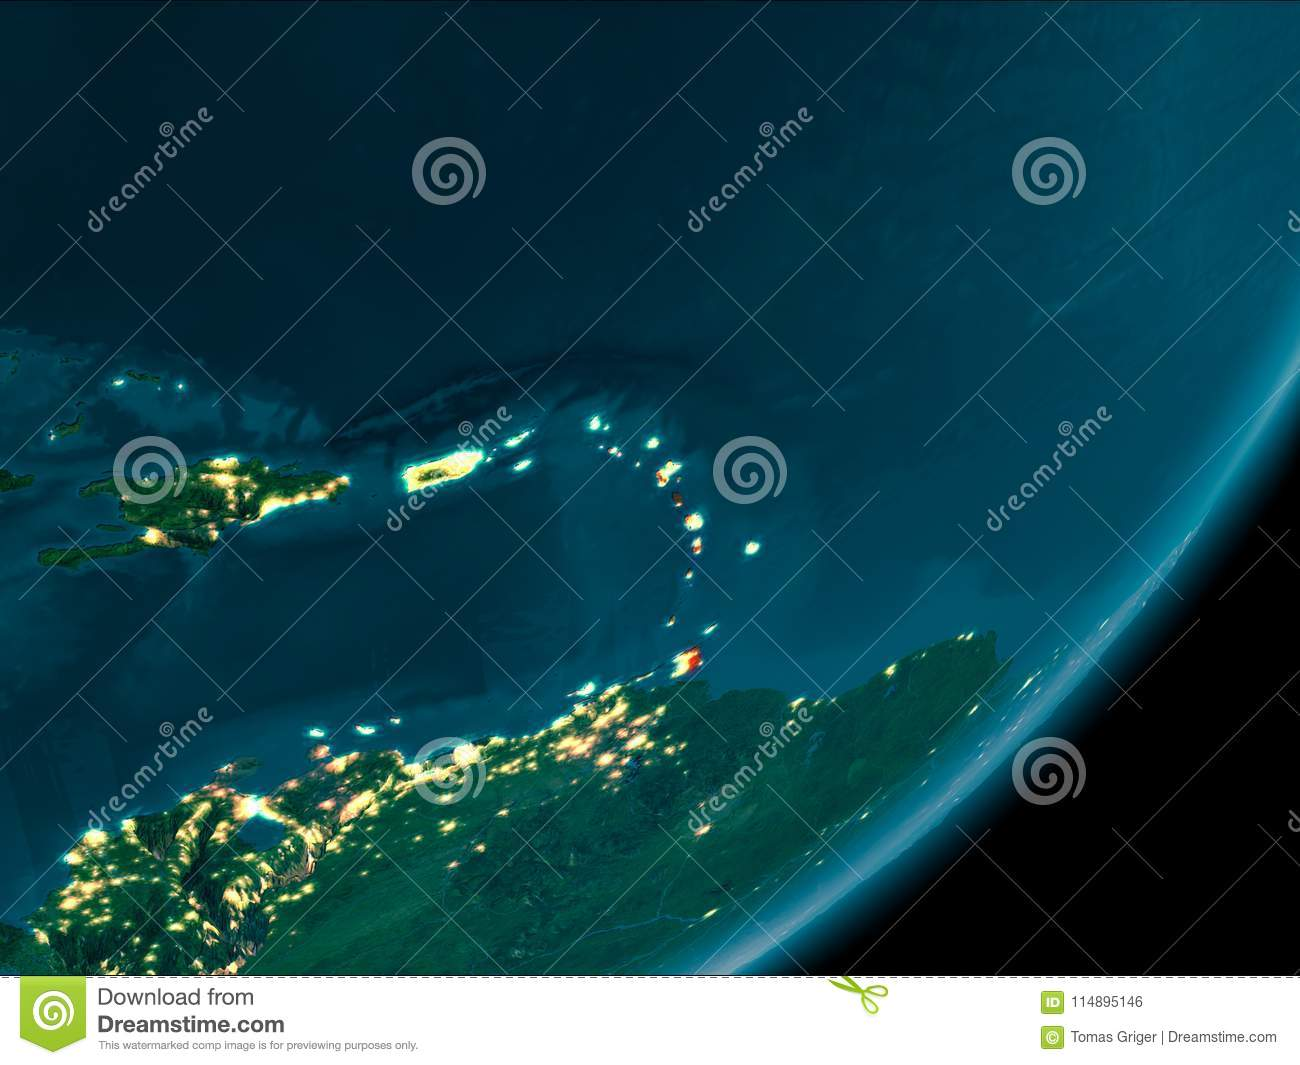 Caribbean from space at night